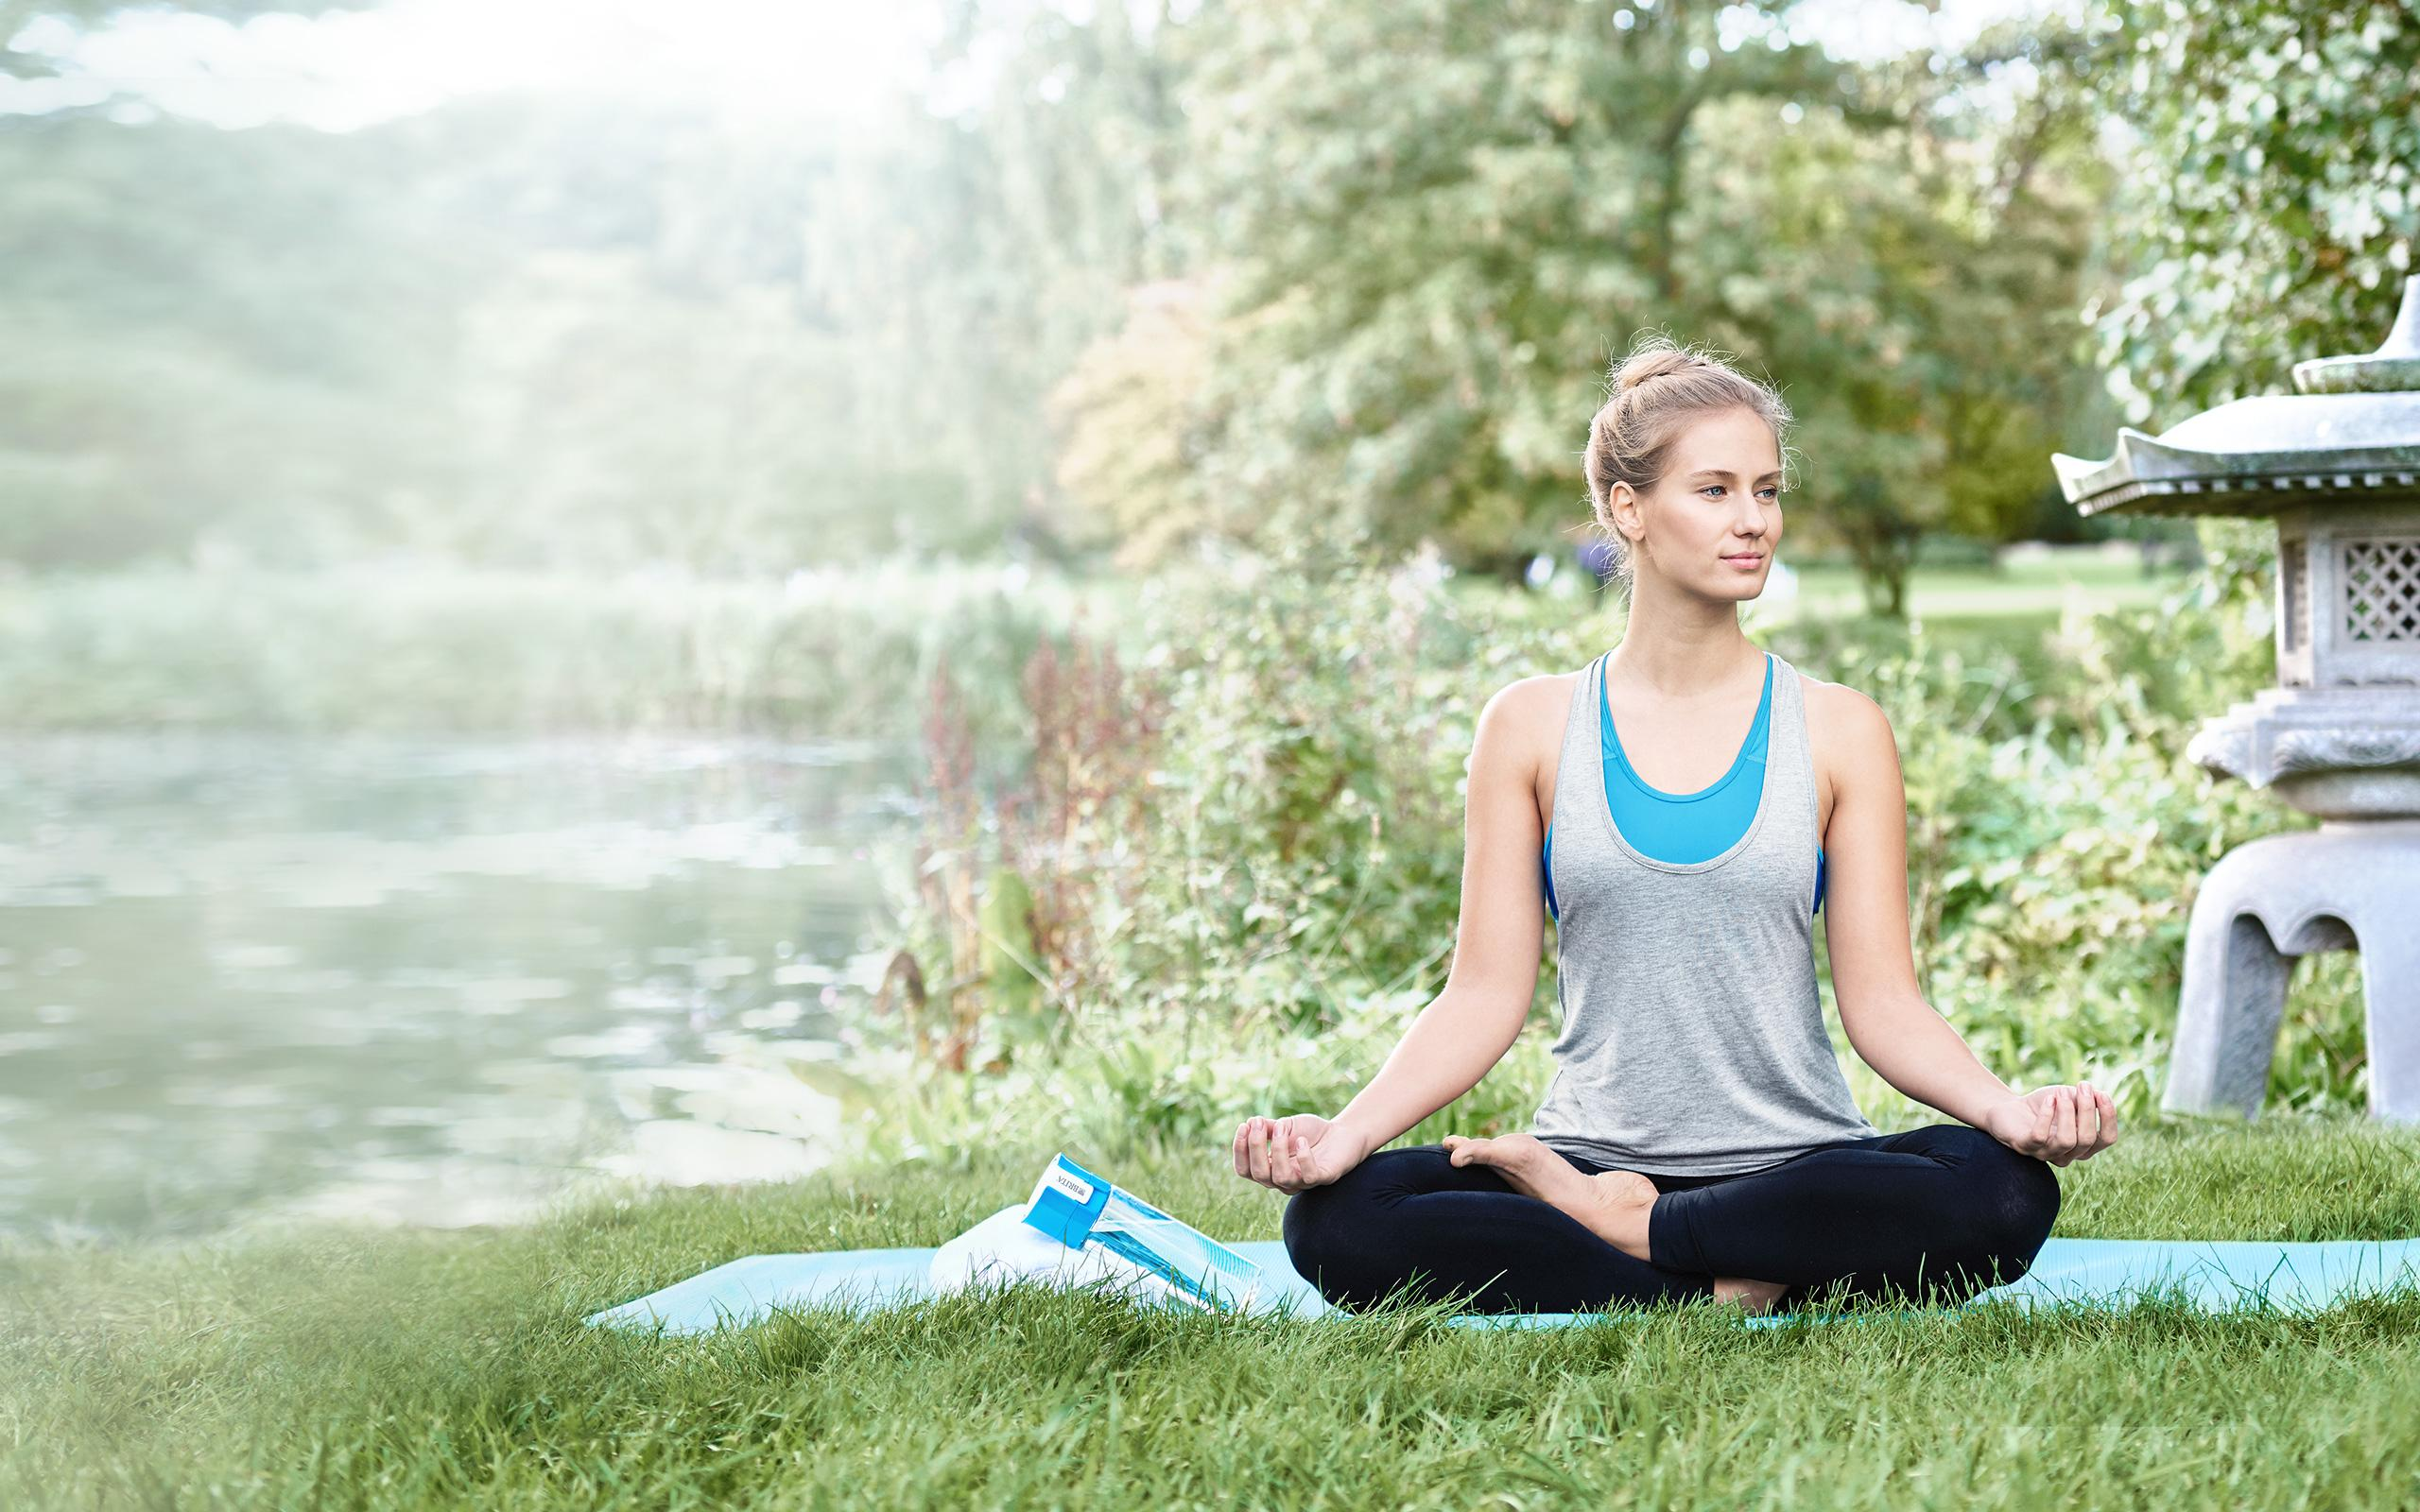 BRITA hydration needs woman doing yoga in park